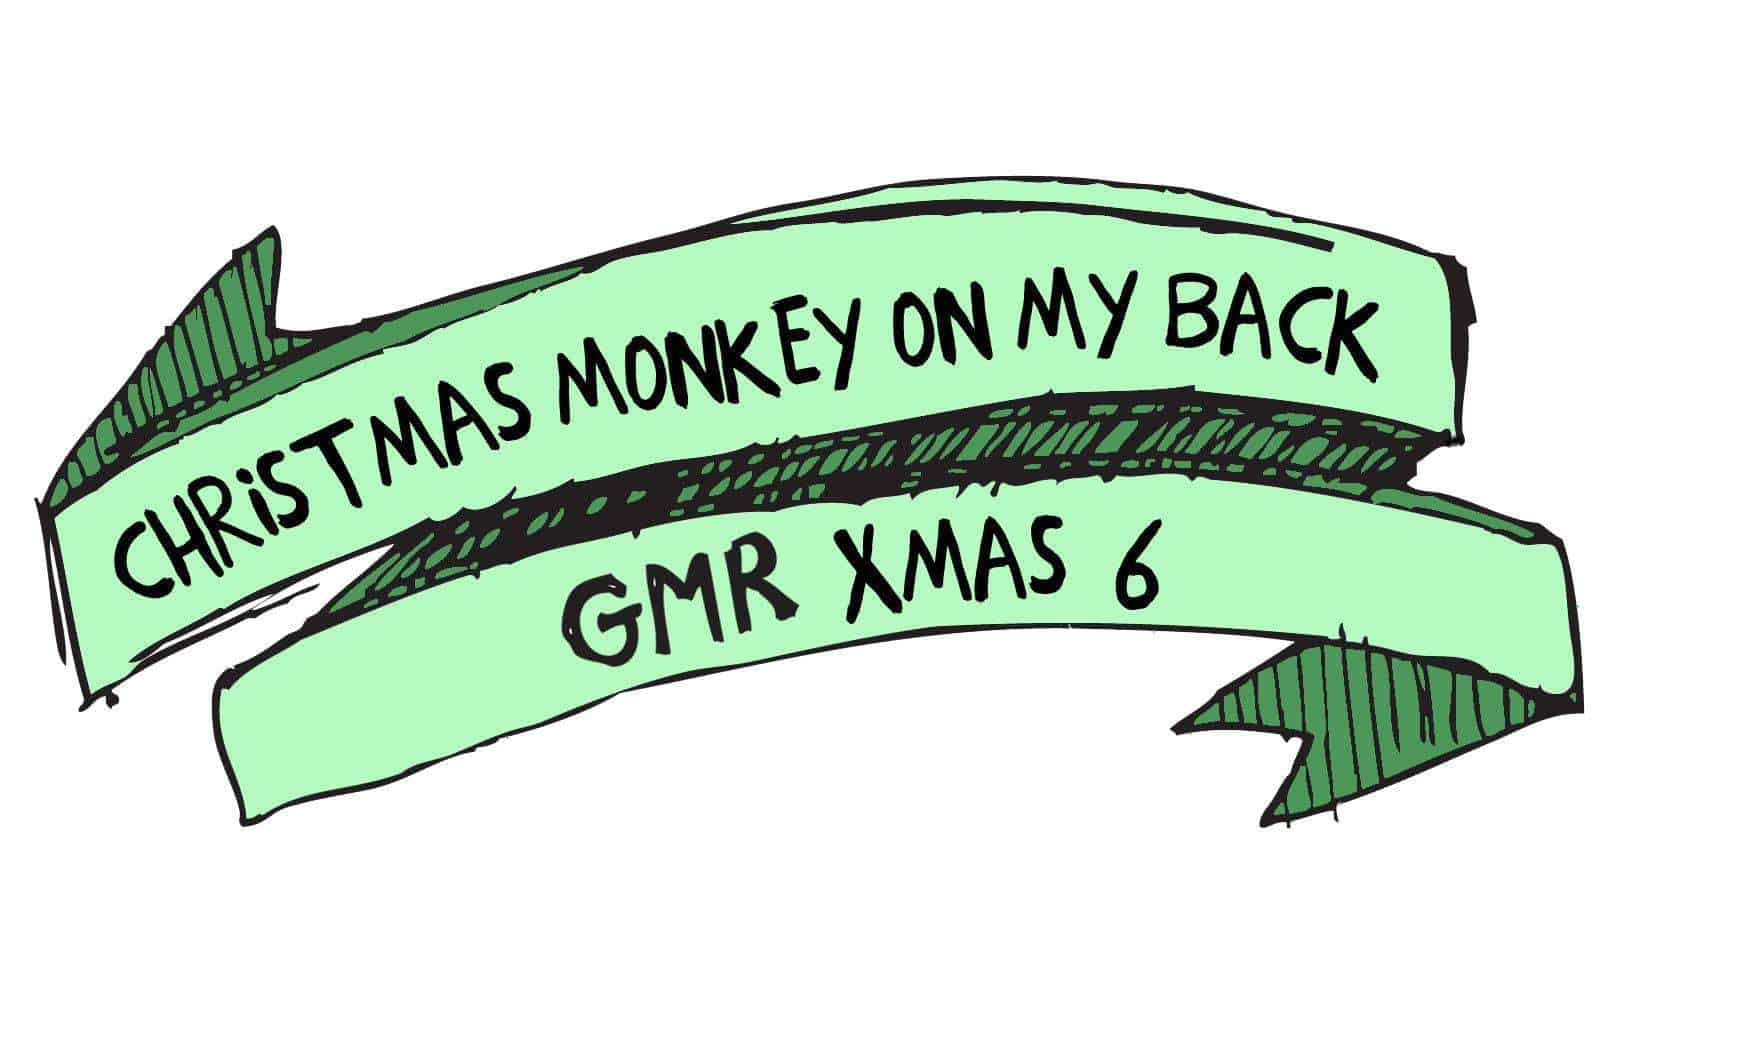 CHRISTMAS MONKEY ON MY BACK AVAILABLE NOW!